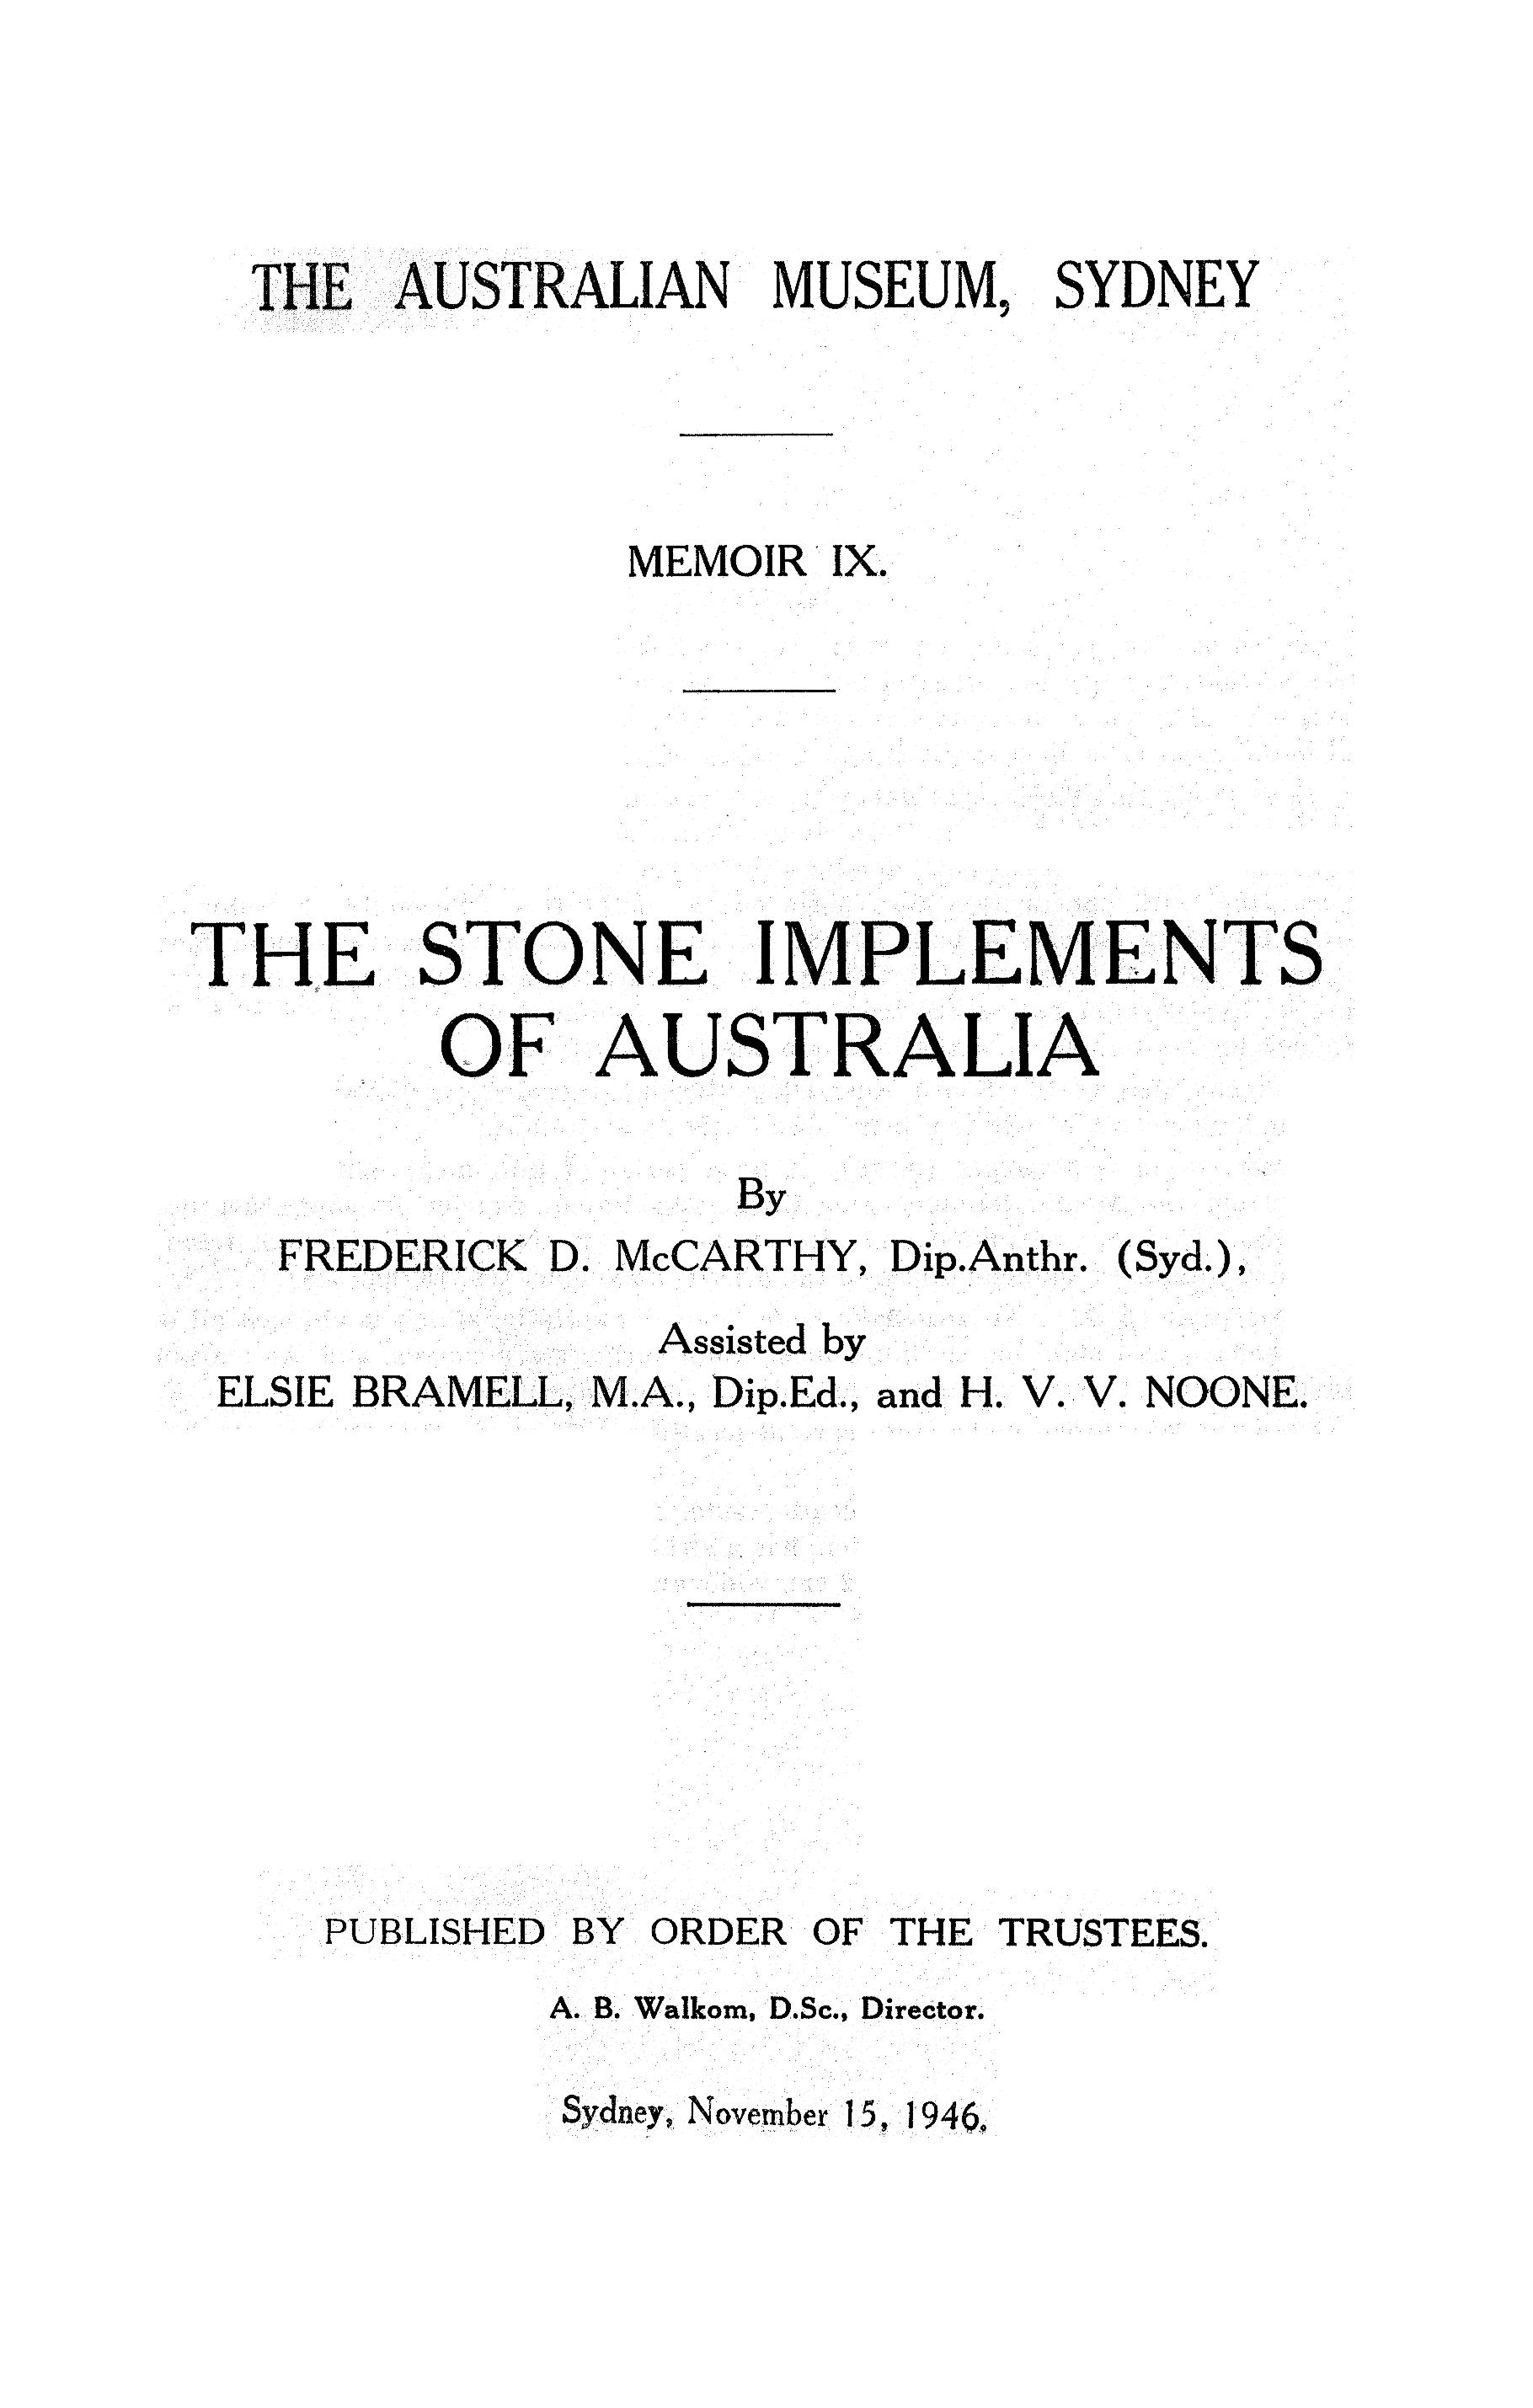 """- This study from 1946 was comprehensive in its day. In particular we quote the section on Bogan picks : """"The Bogan-pick (Fig. 338) is ellipsoid in shape, tapering to a point or working edge at each end, or at one end. Each half is cone-shaped. The surface is pecked, and the transverse-section is round or oval. Of the three examples known one, from east of Balan, Victoria, figured by Horne (1921, fig. 50), is pointed at one end and rounded on the butt; one from Grong Grong, N. S. Wales (McCarthy, 1944, p. 259, pI. xv, fig. 4) is elliptical but pointed at one end only; one from the Bogan River, New South Wales, has a conical point at each end, one formed by three facets and the other by four facets.They are from 18 to 23 cm. long, and up to 5 lb.[2.5kg] in weight. The name Bogan is derived from the Bogan River, New South Wales, where one of the above specimens was found"""".Hardly a metre long and so heavy you couldn't use above your waist as Mr Pascoe claims!"""